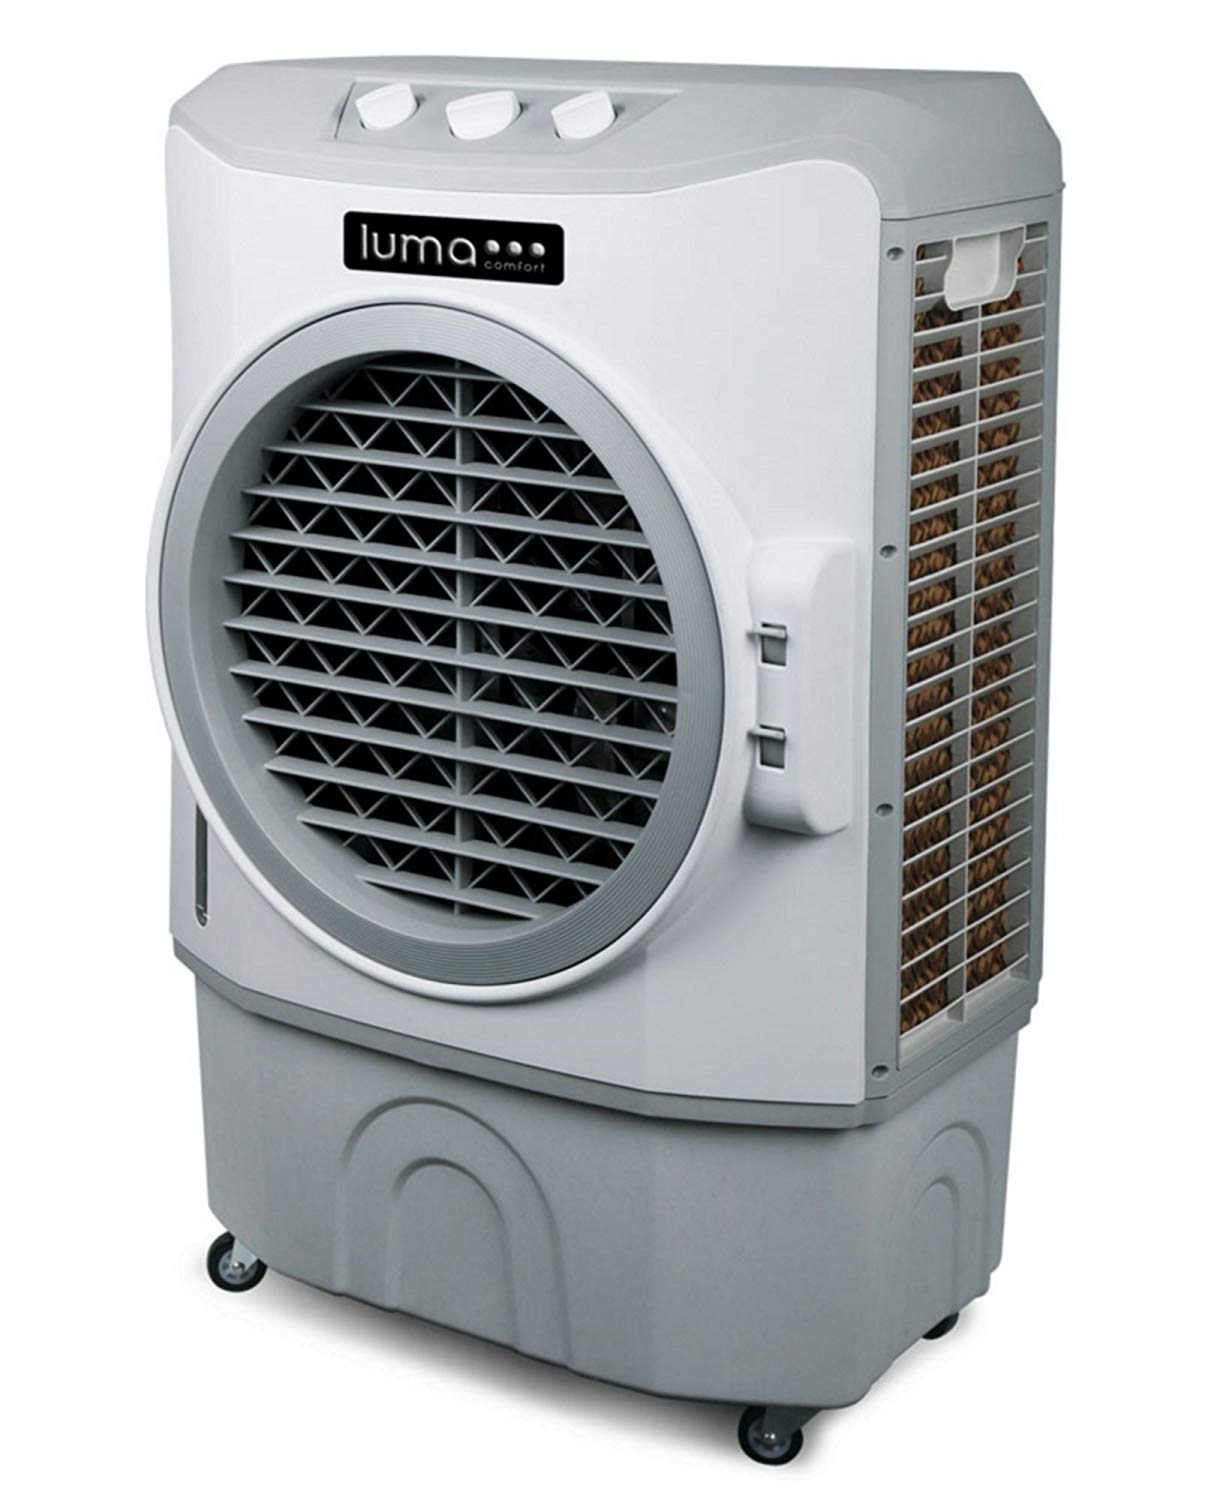 Luma Comfort EC220W High Power 1650 CFM Evaporative Cooler